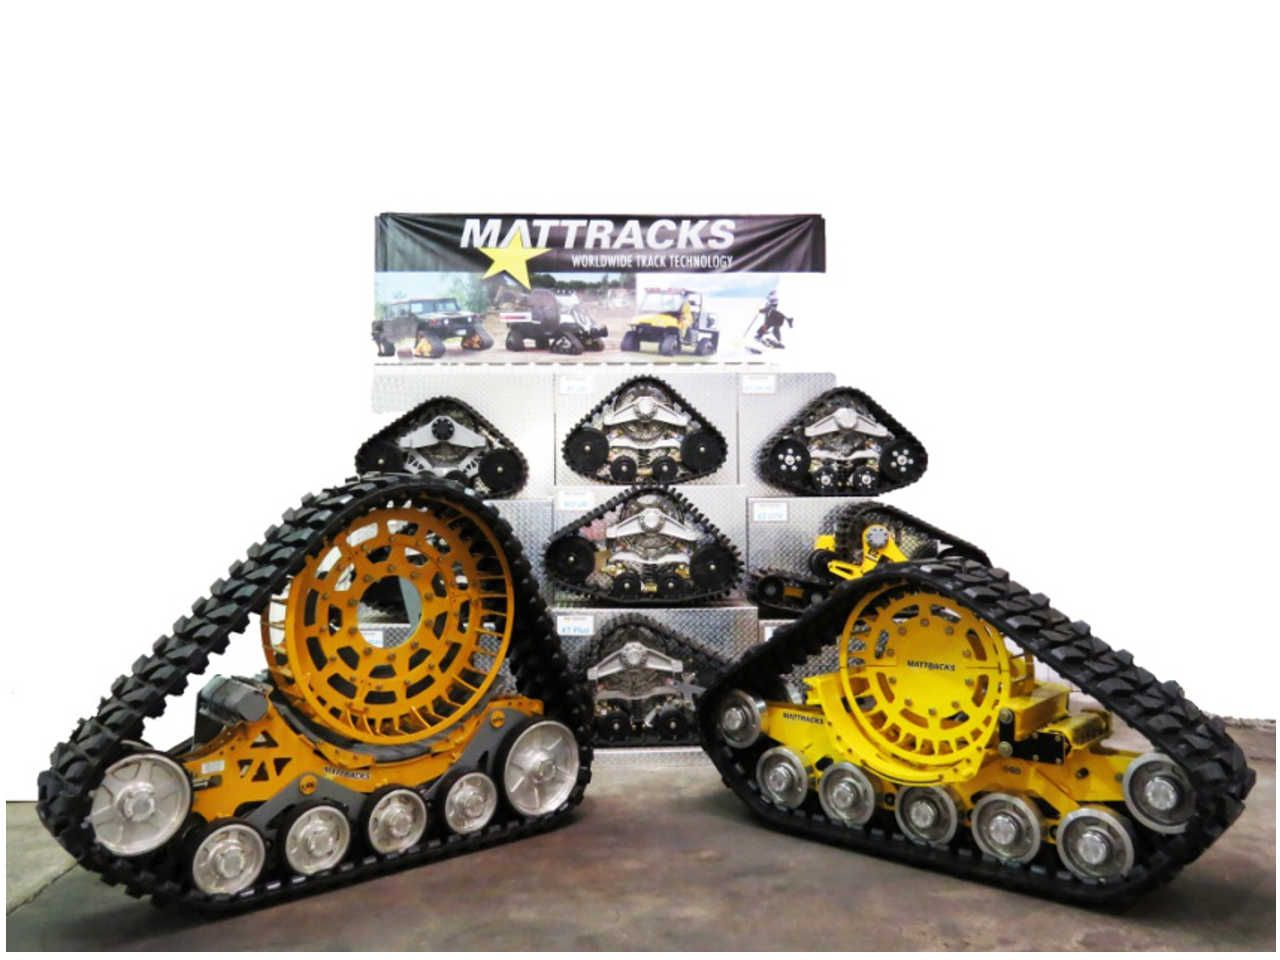 Mattracks the leader in rubber track conversion systems just released its new series of ag